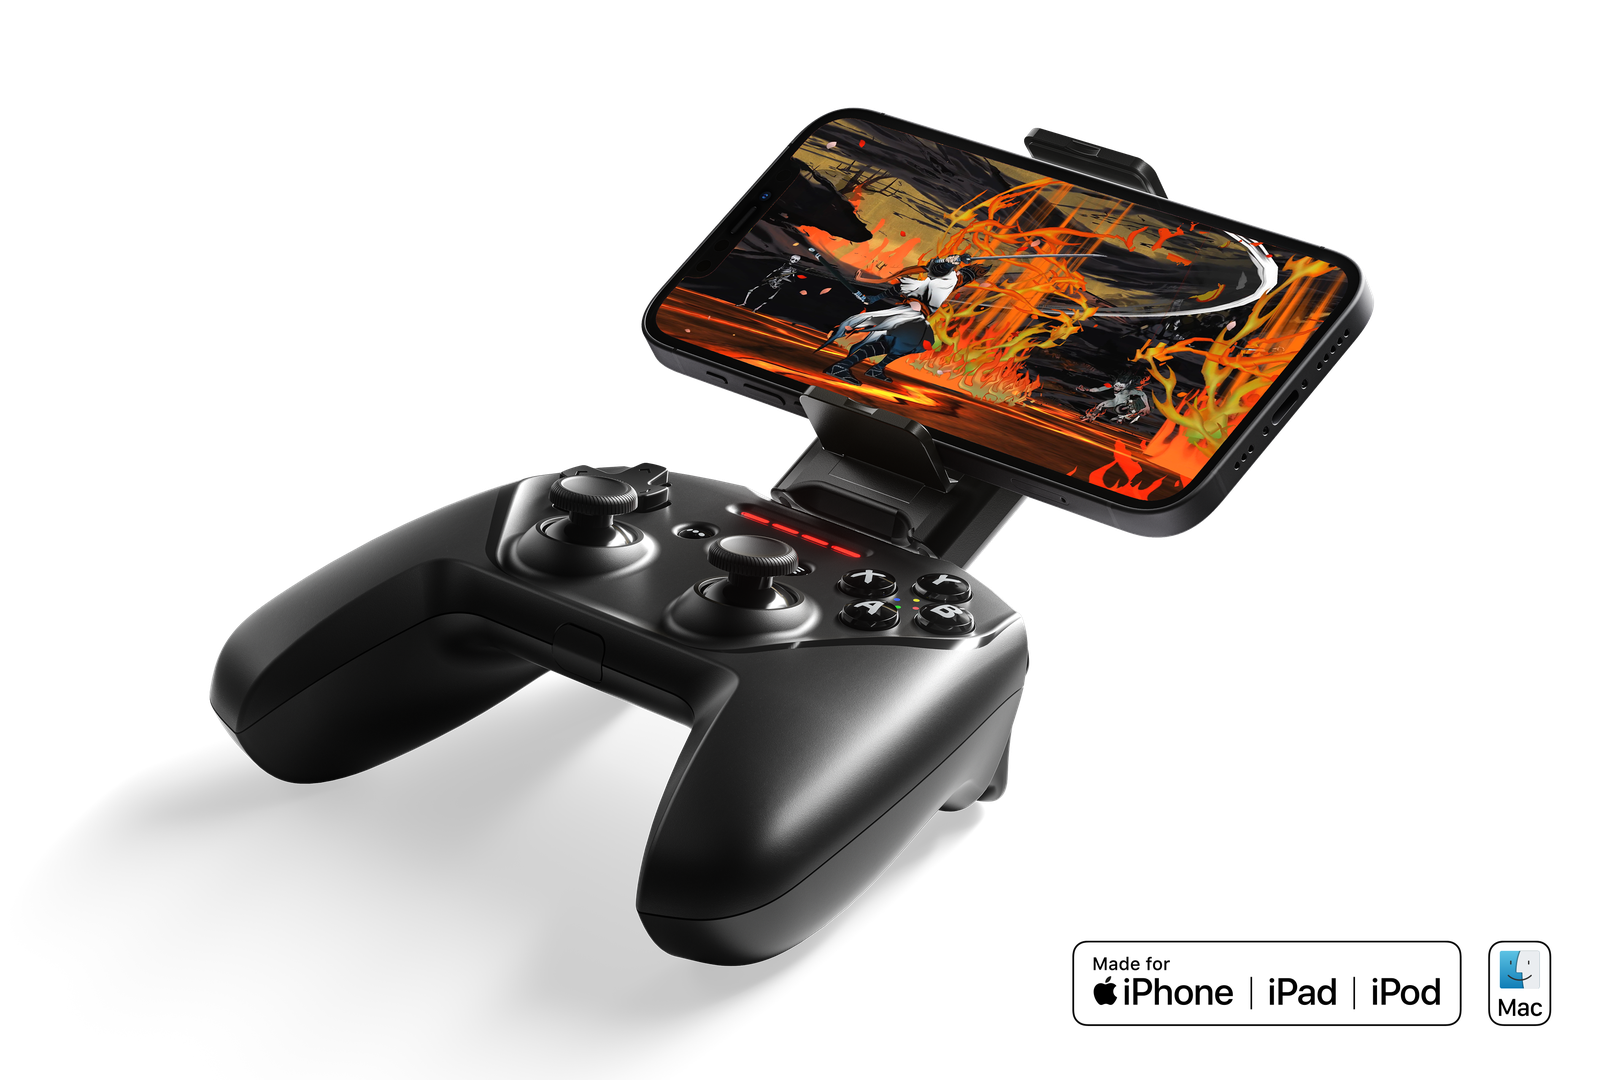 The Nimbus+ in all its mobile controller glory.